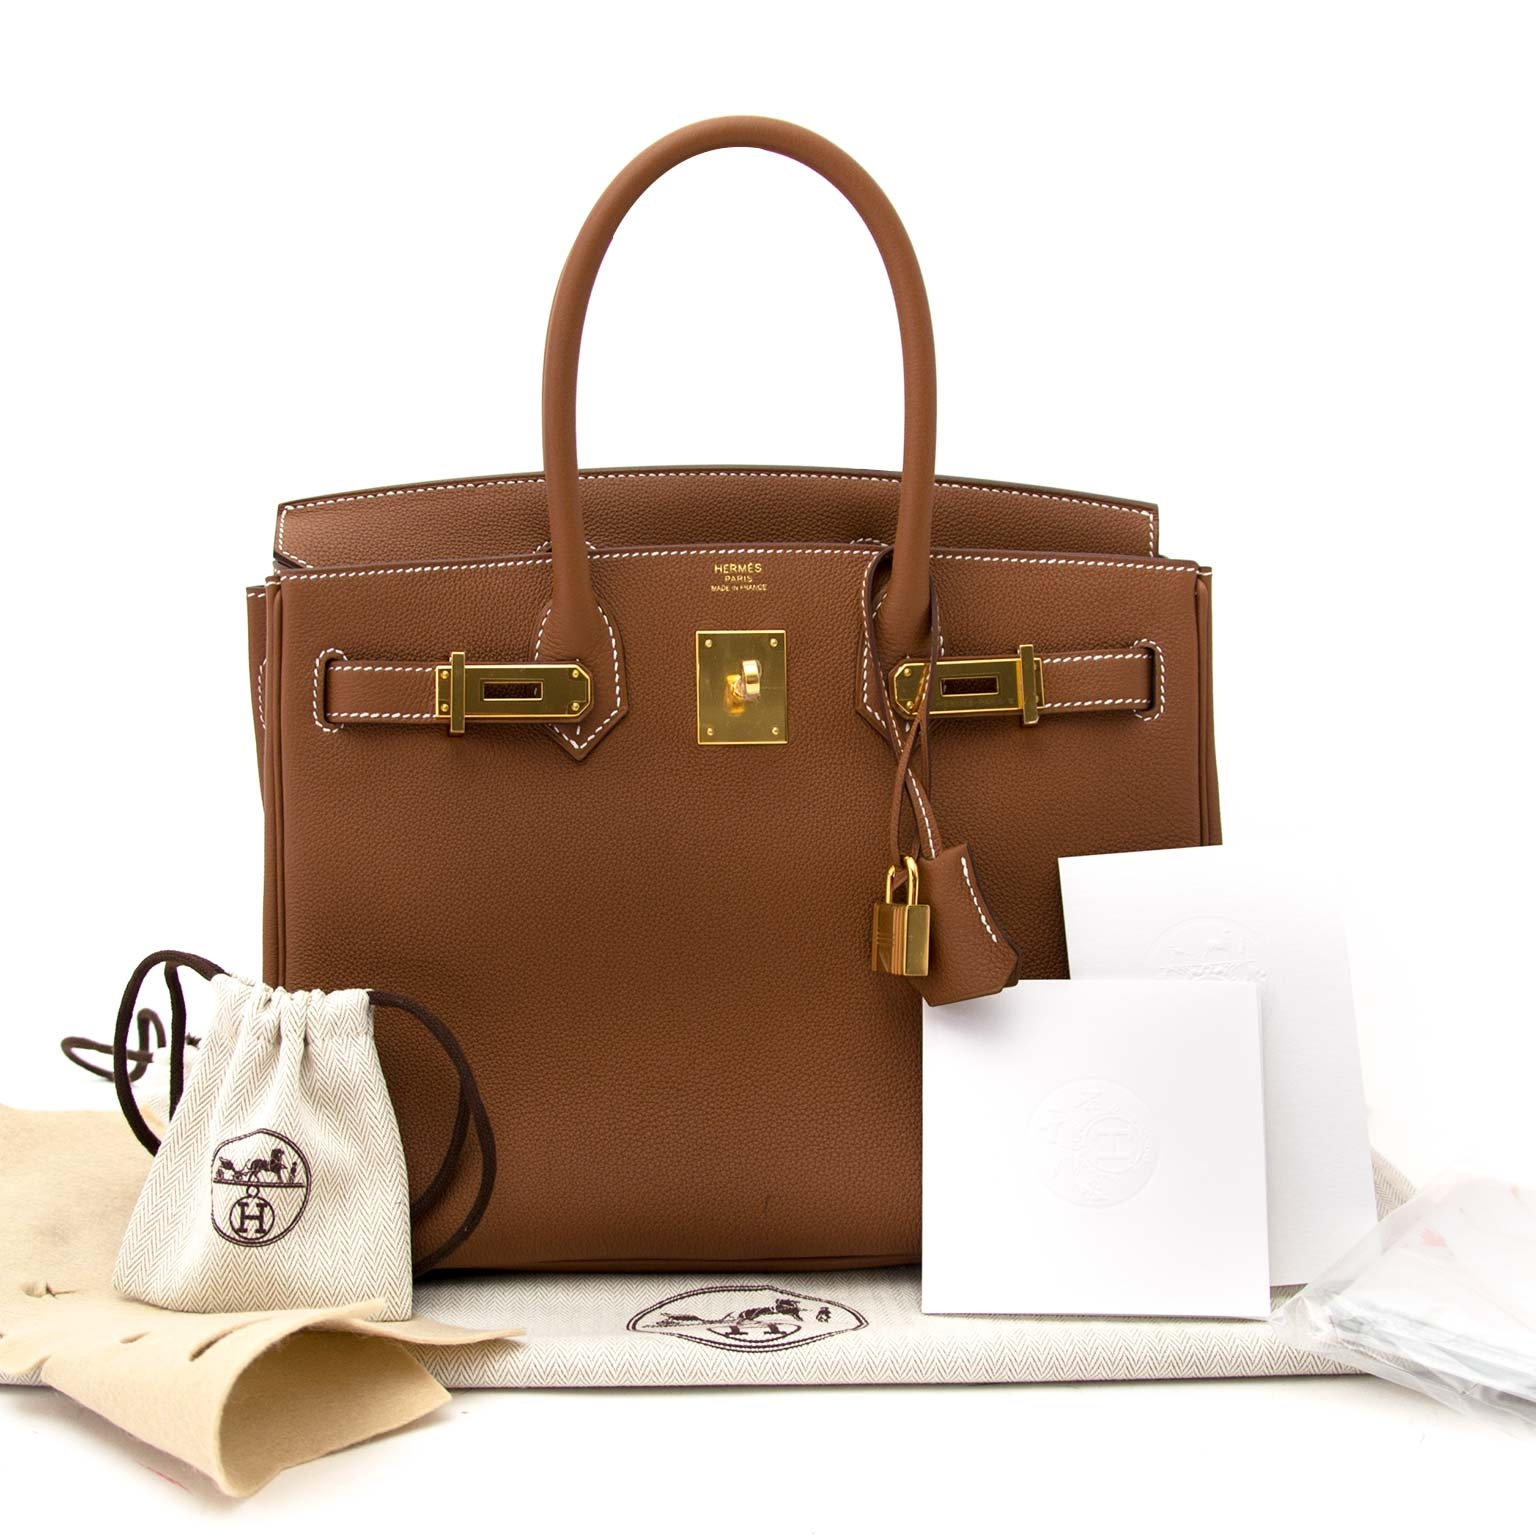 hermes birkin 30 togo gold now online at labellov.com for the best price 100% authentic